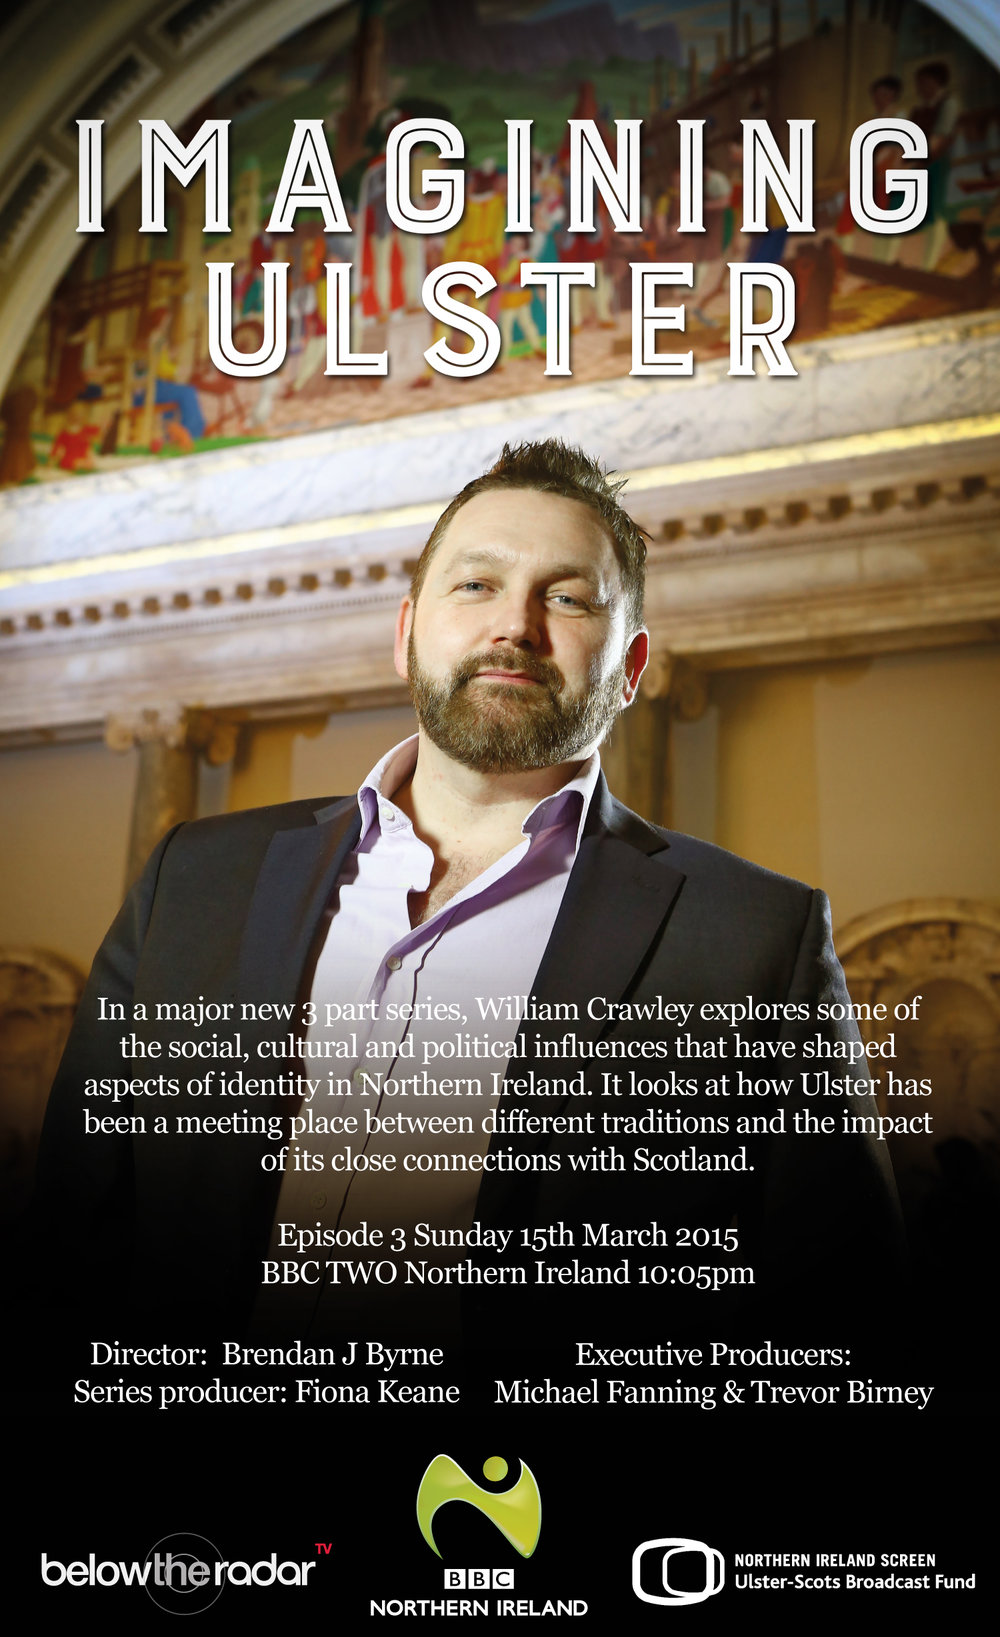 Imagining Ulster - Series for BBC Two NI